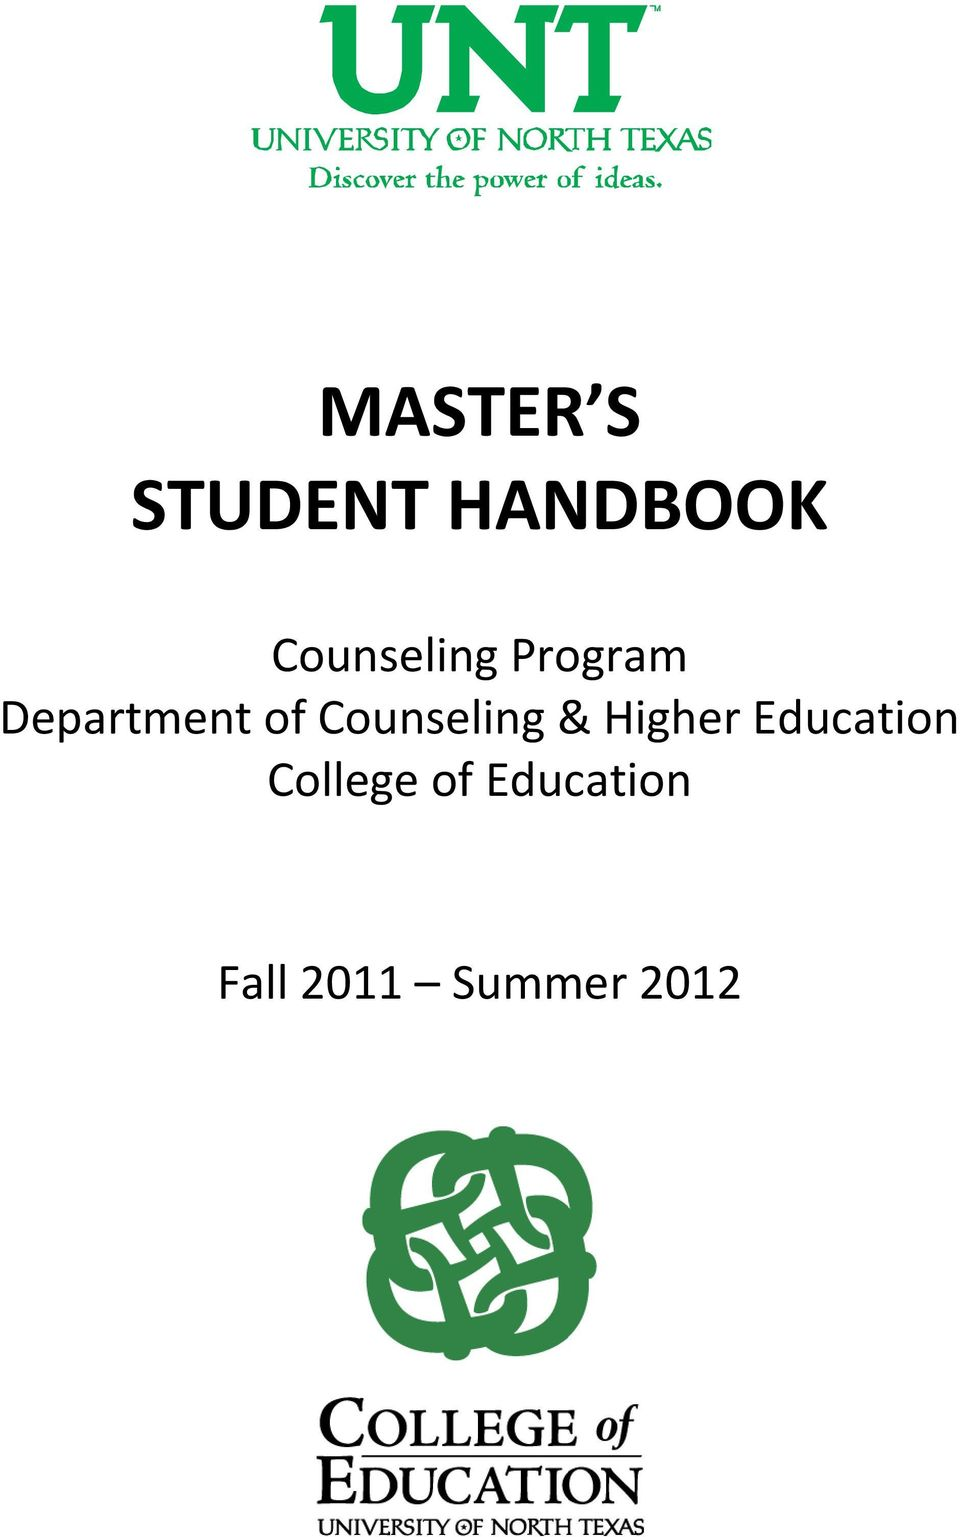 Counseling & Higher Education